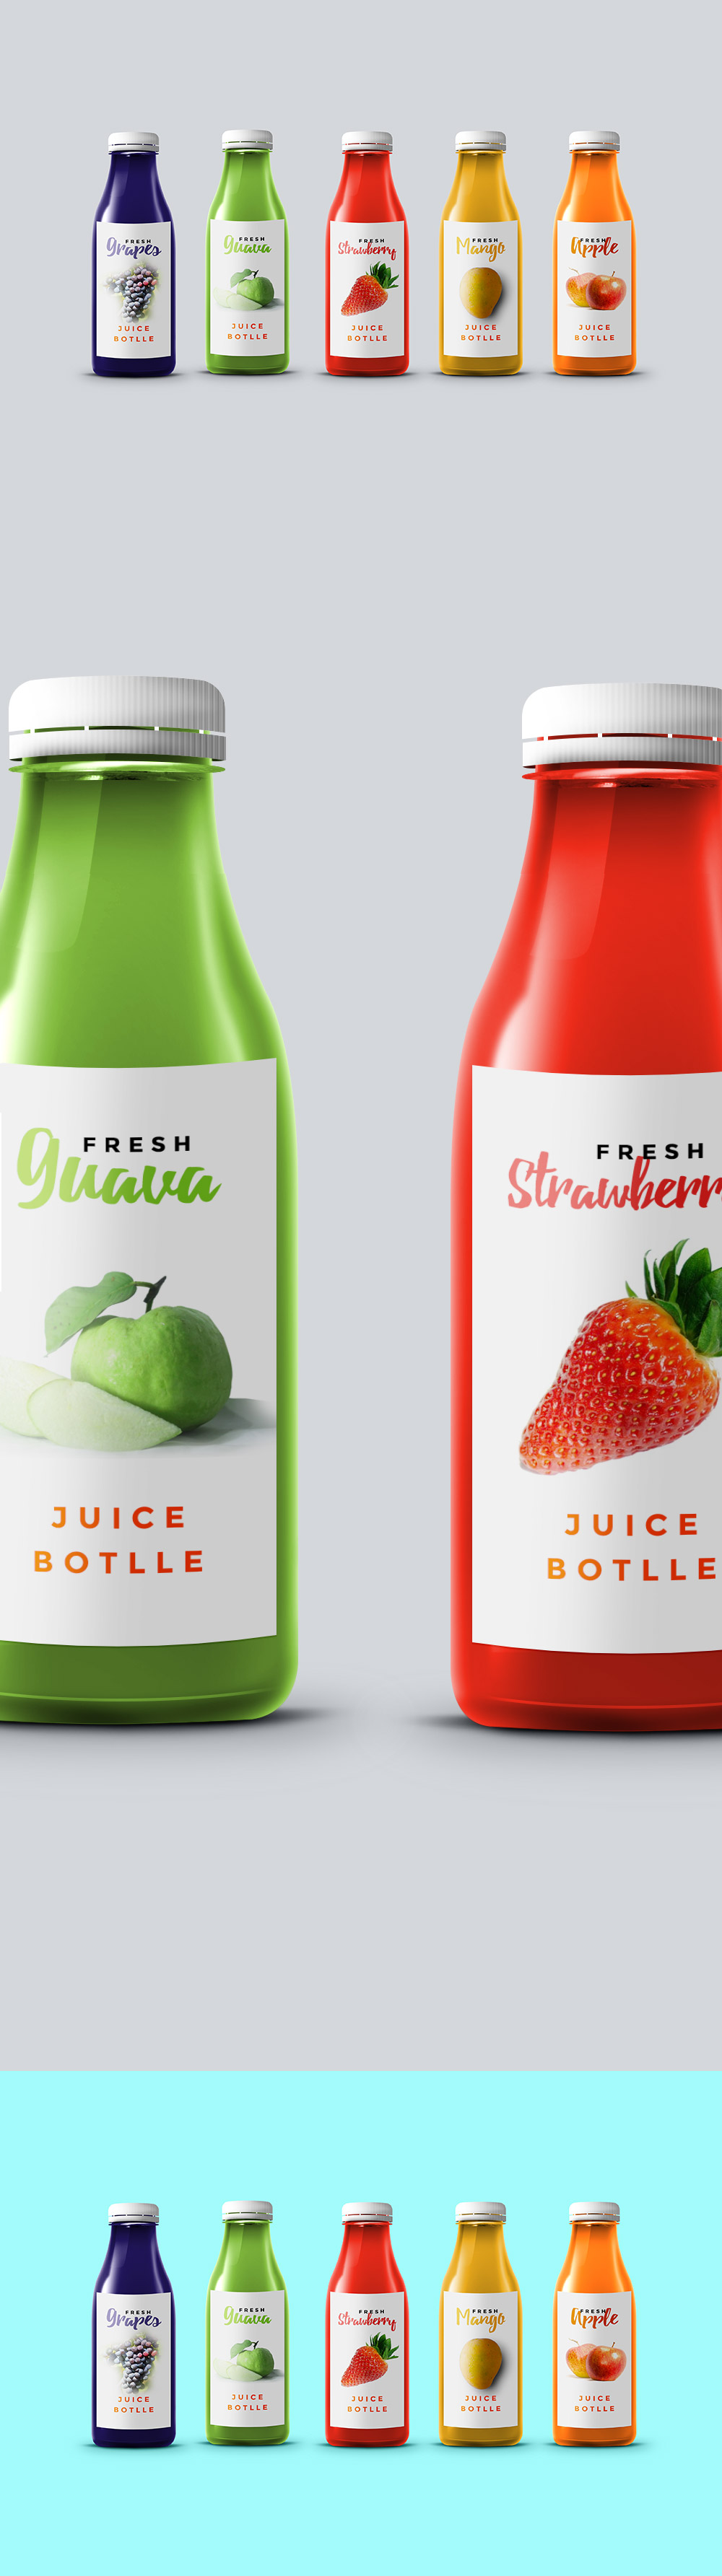 Juice Bottle Mockup Template